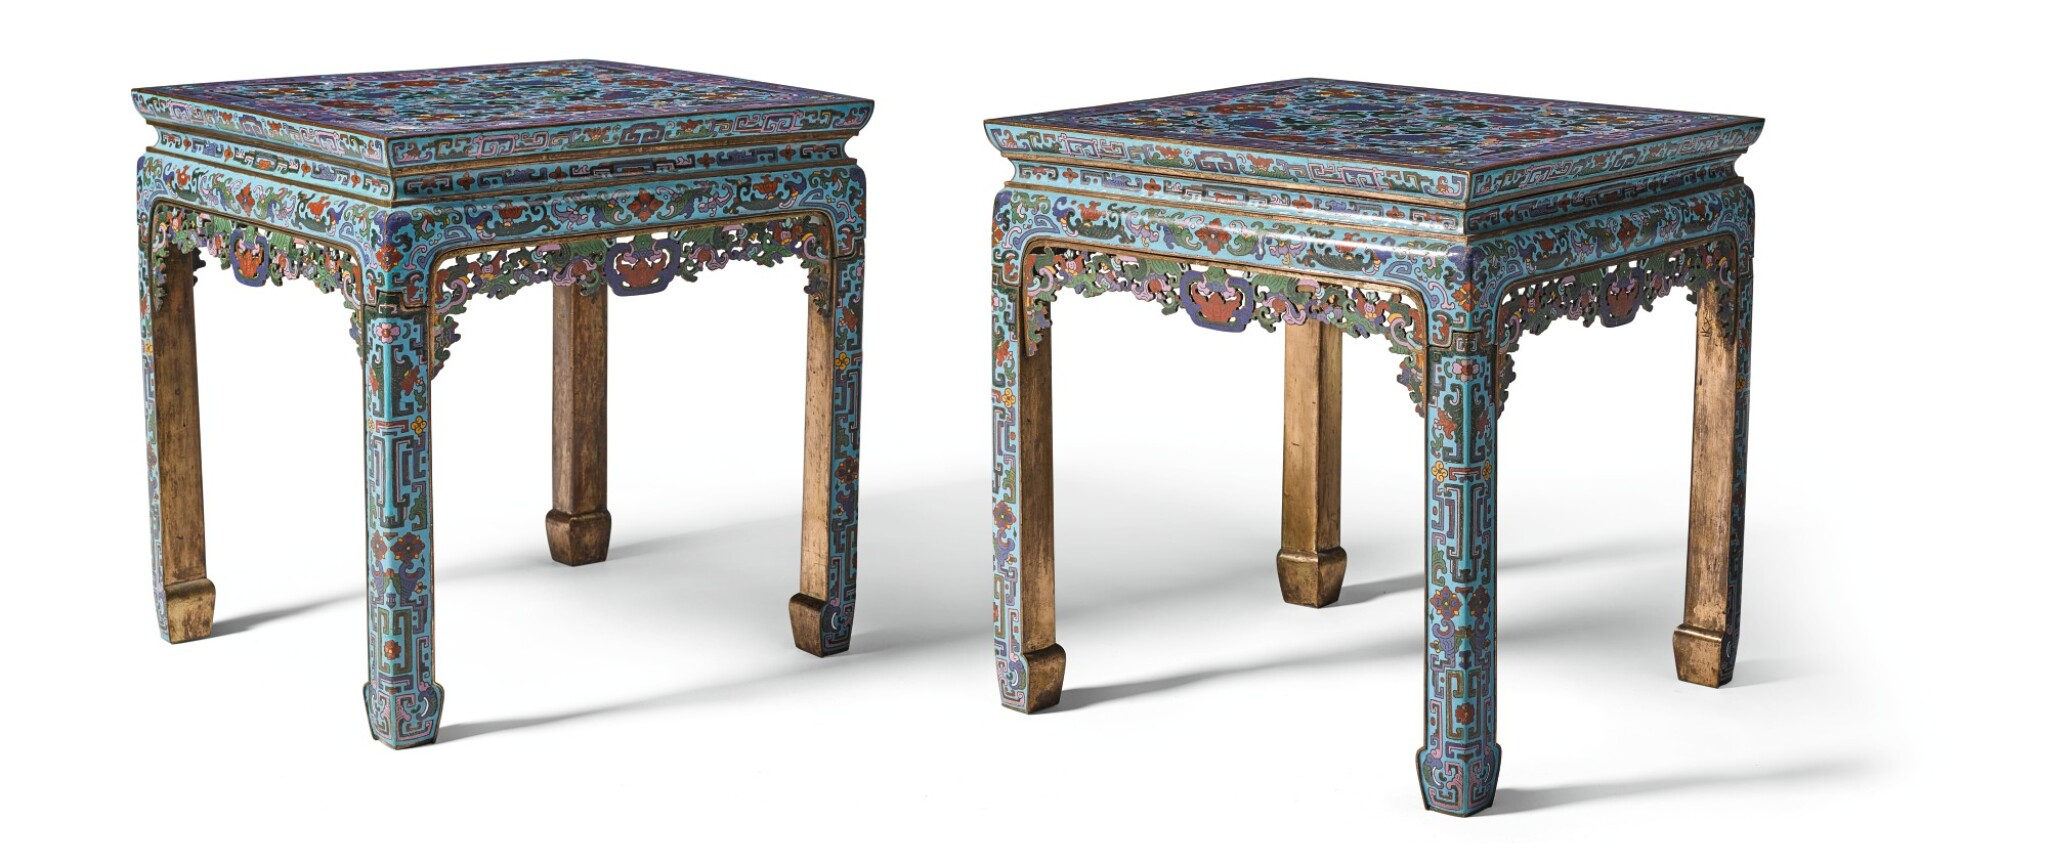 View full screen - View 1 of Lot 316. A PAIR OF CLOISONNE ENAMEL STOOLS 20TH CENTURY | 二十世紀 掐絲琺瑯瑞蝠紋方凳一對.